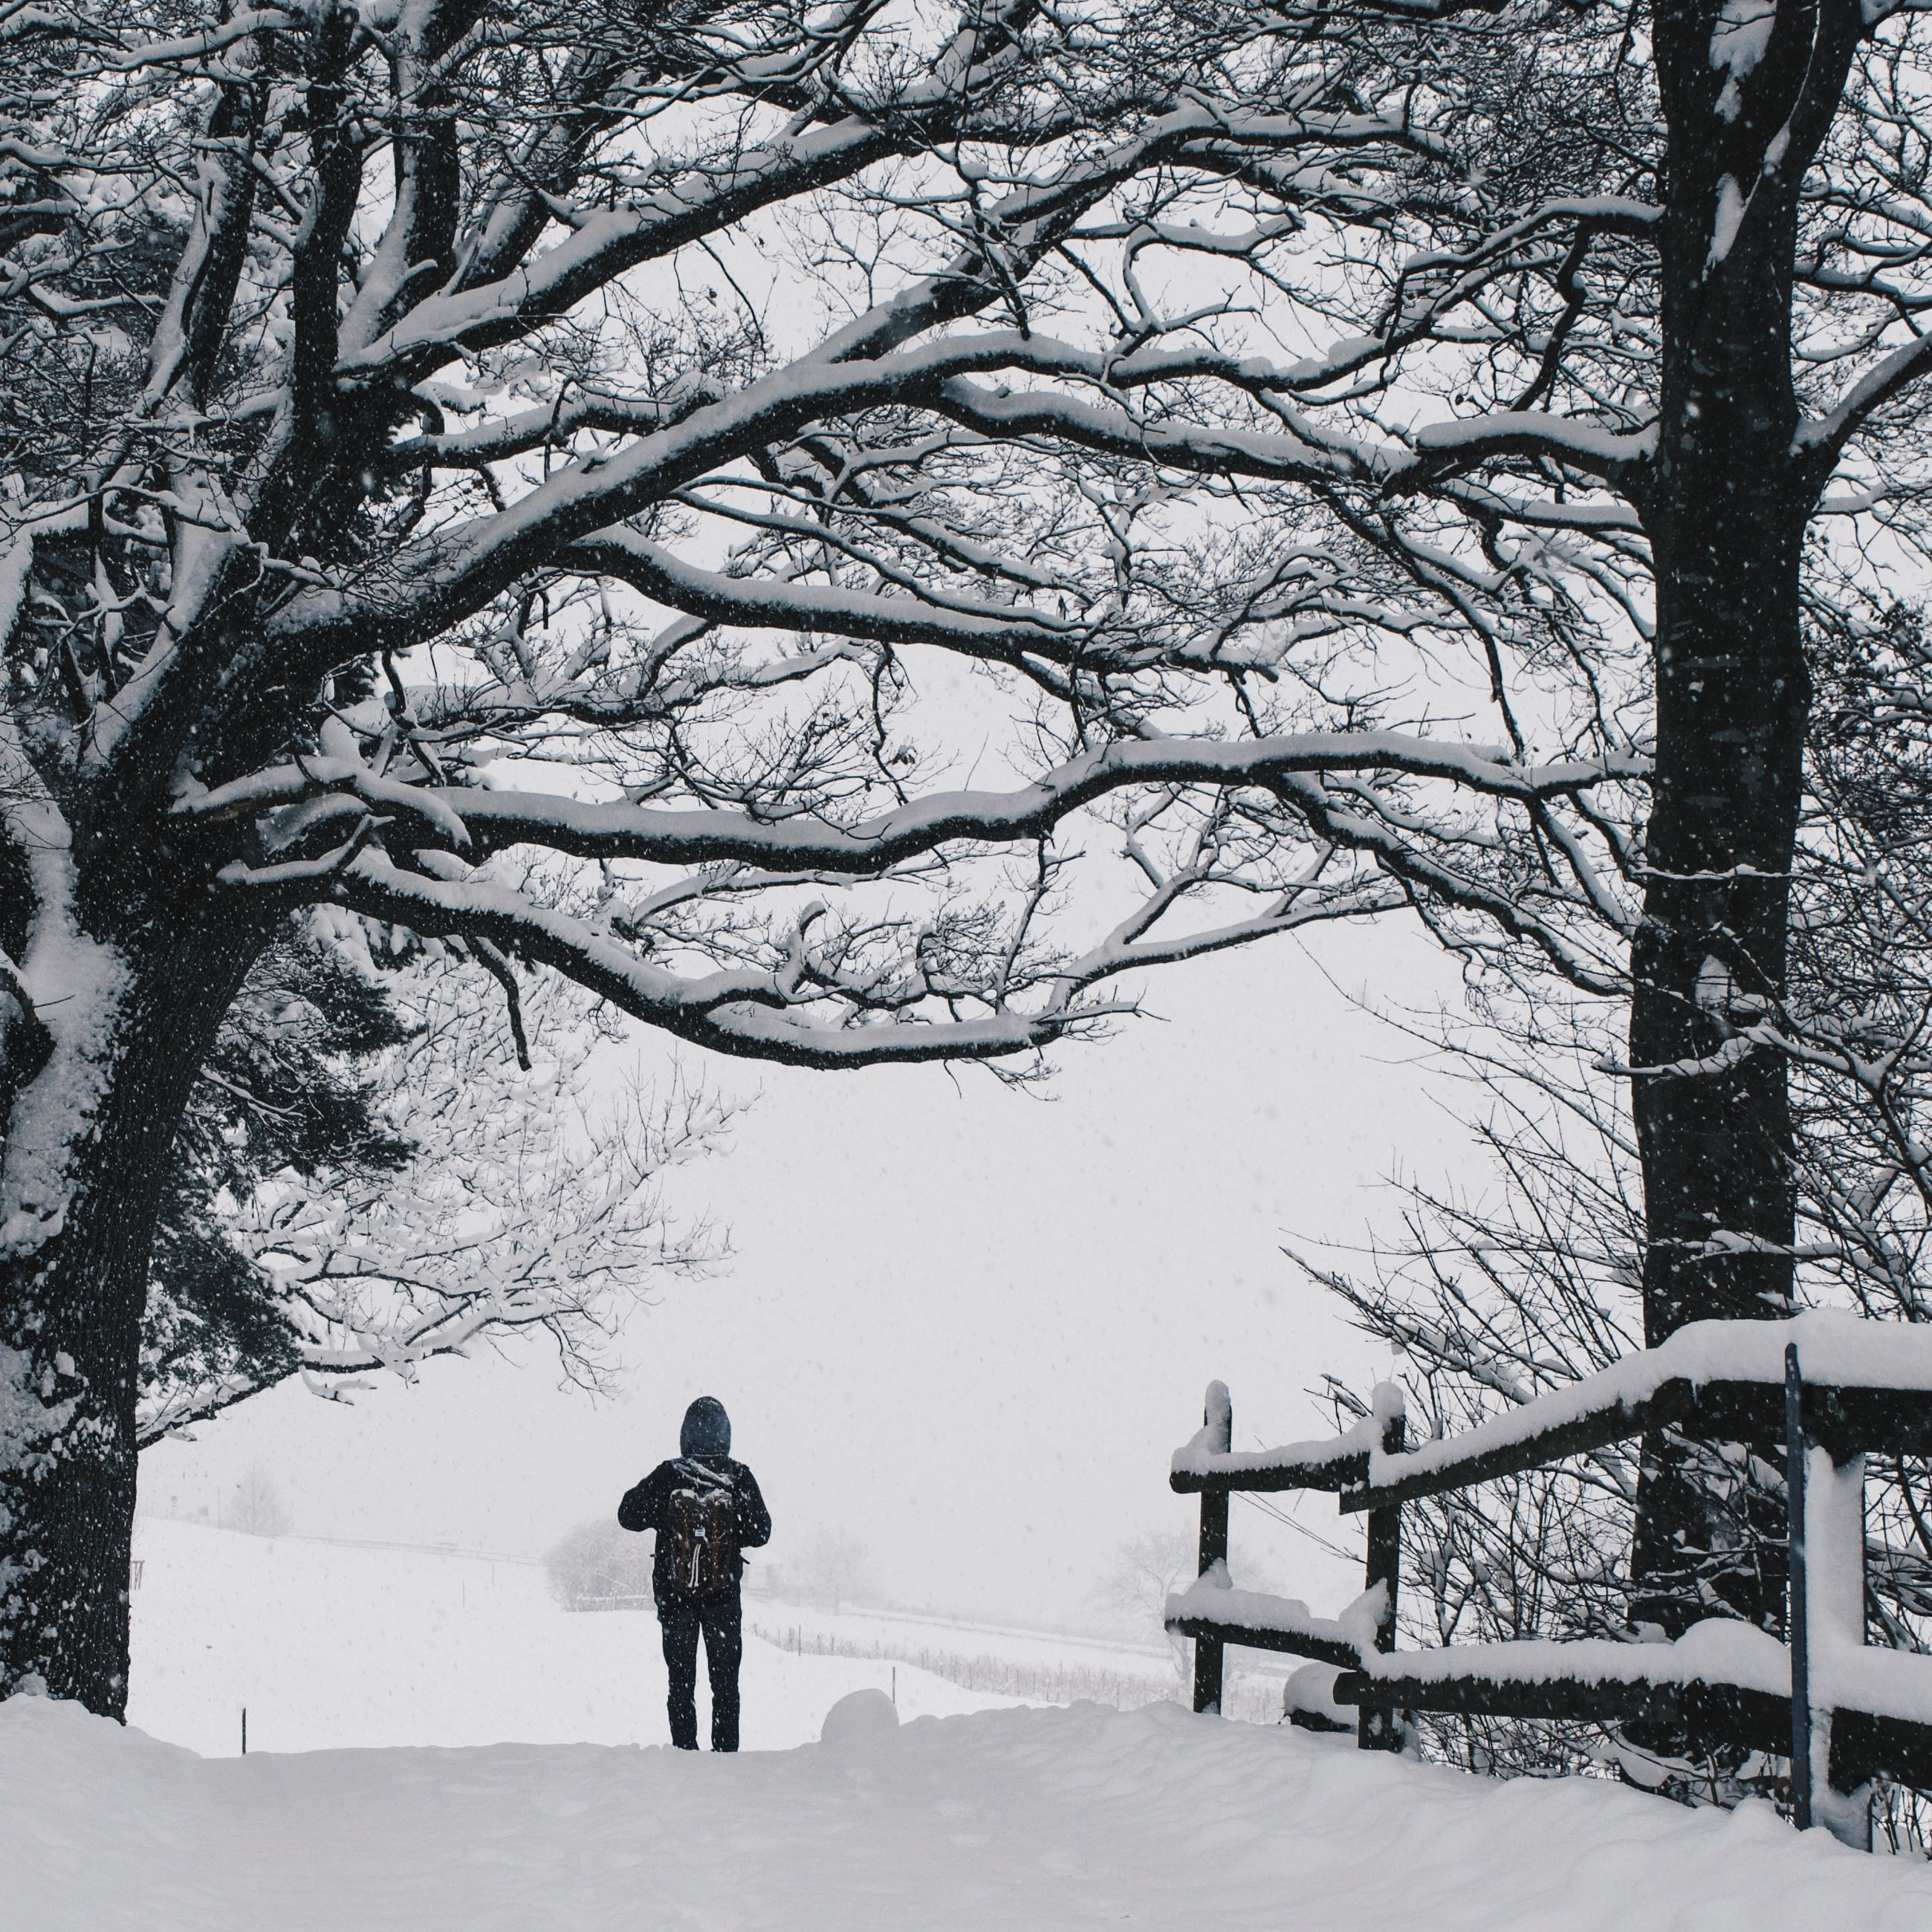 winter, snow, cold temperature, bare tree, season, tree, weather, full length, branch, rear view, lifestyles, leisure activity, walking, nature, tranquility, covering, tranquil scene, men